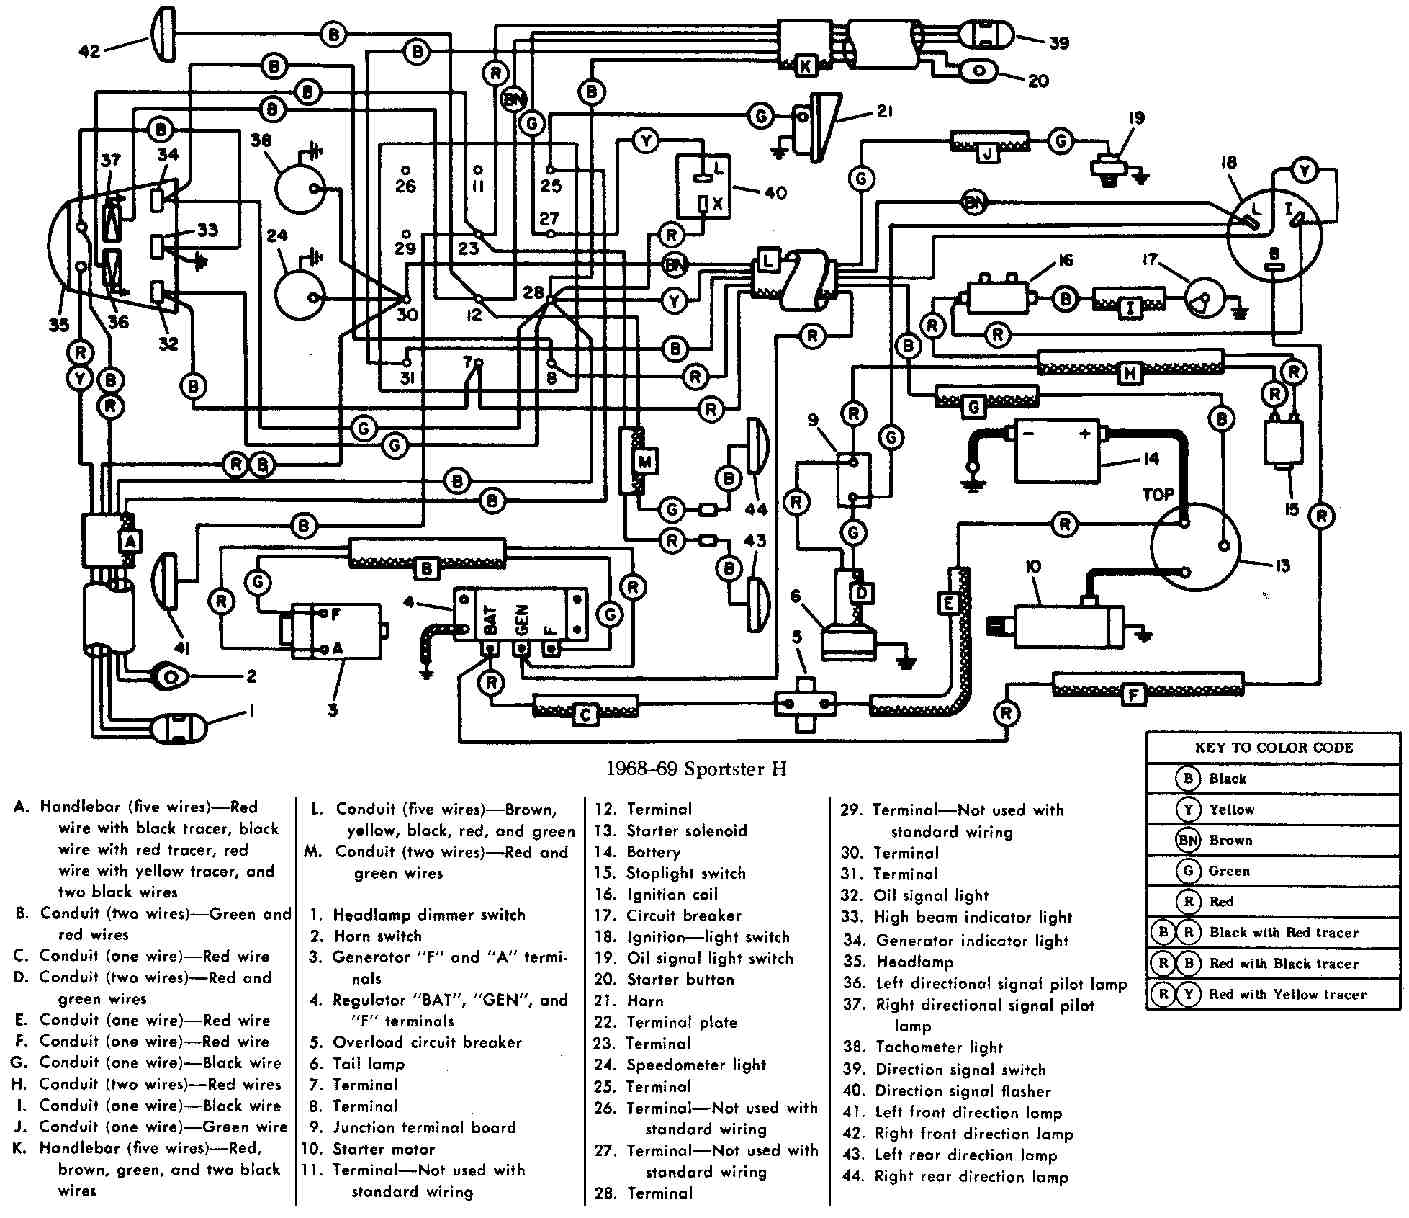 1989 harley sportster 1200 wire diagram